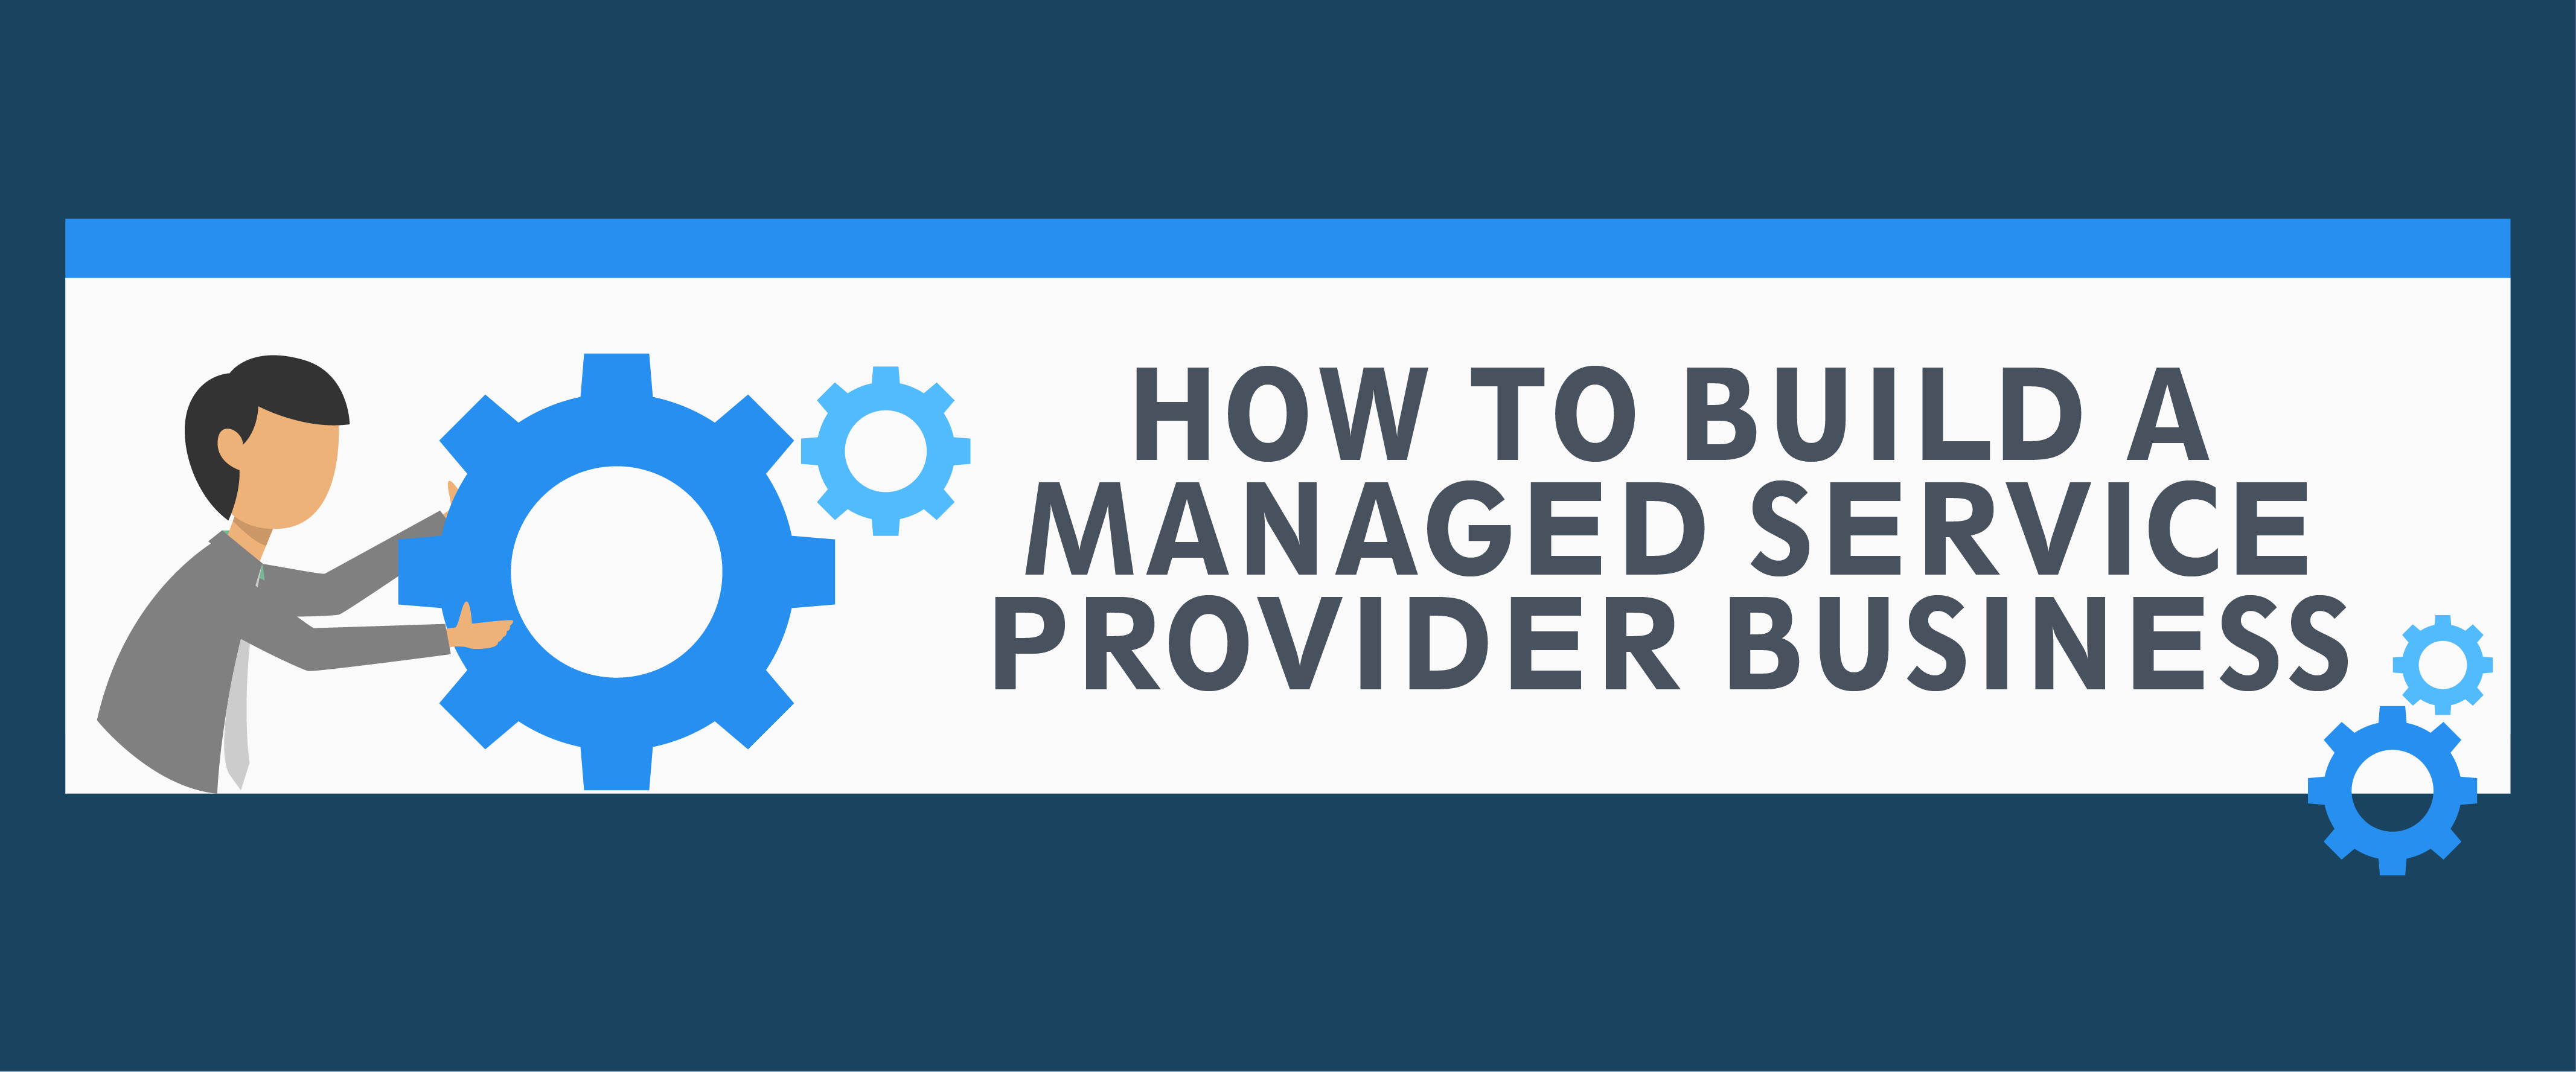 How to Build a Managed Service Provider(MSP) Business